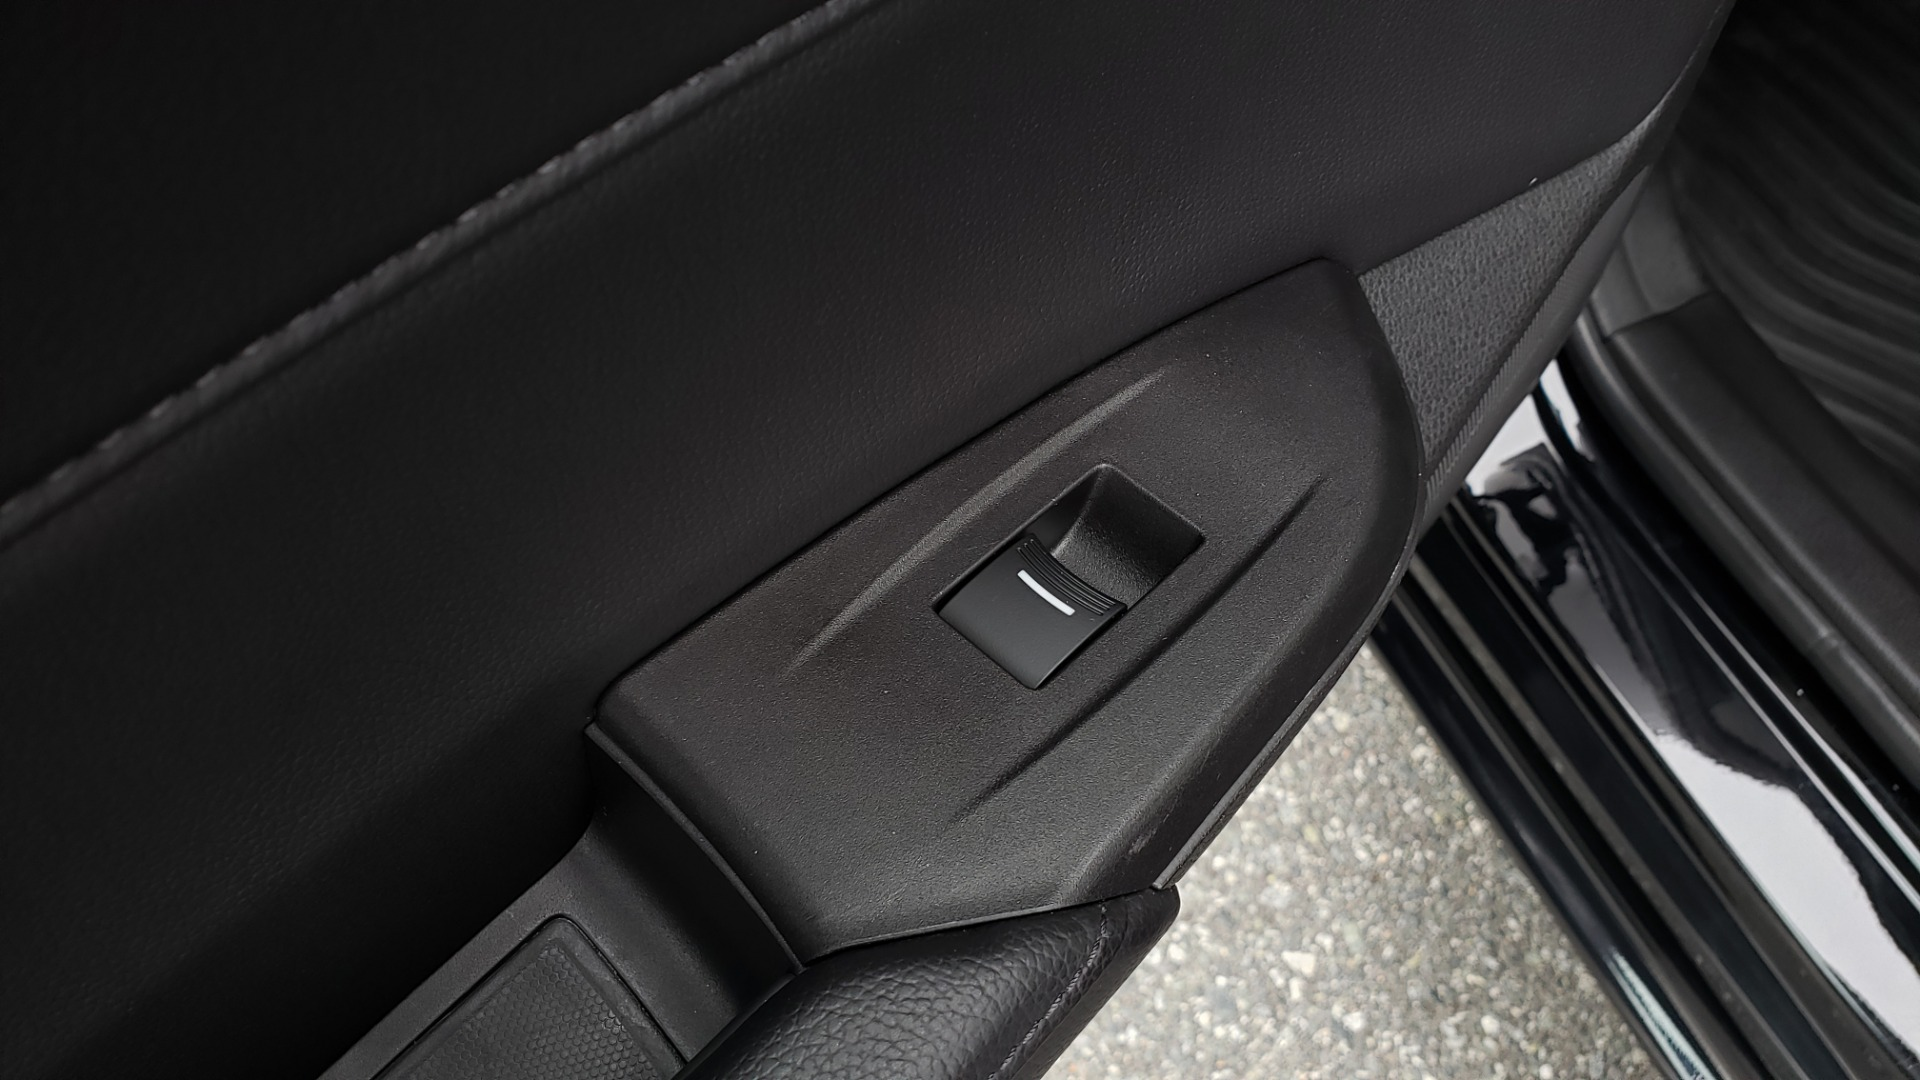 Used 2013 Acura ILX TECH PKG / SUNROOF / NAV / DUAL-ZONE A/C / REARVIEW for sale Sold at Formula Imports in Charlotte NC 28227 53